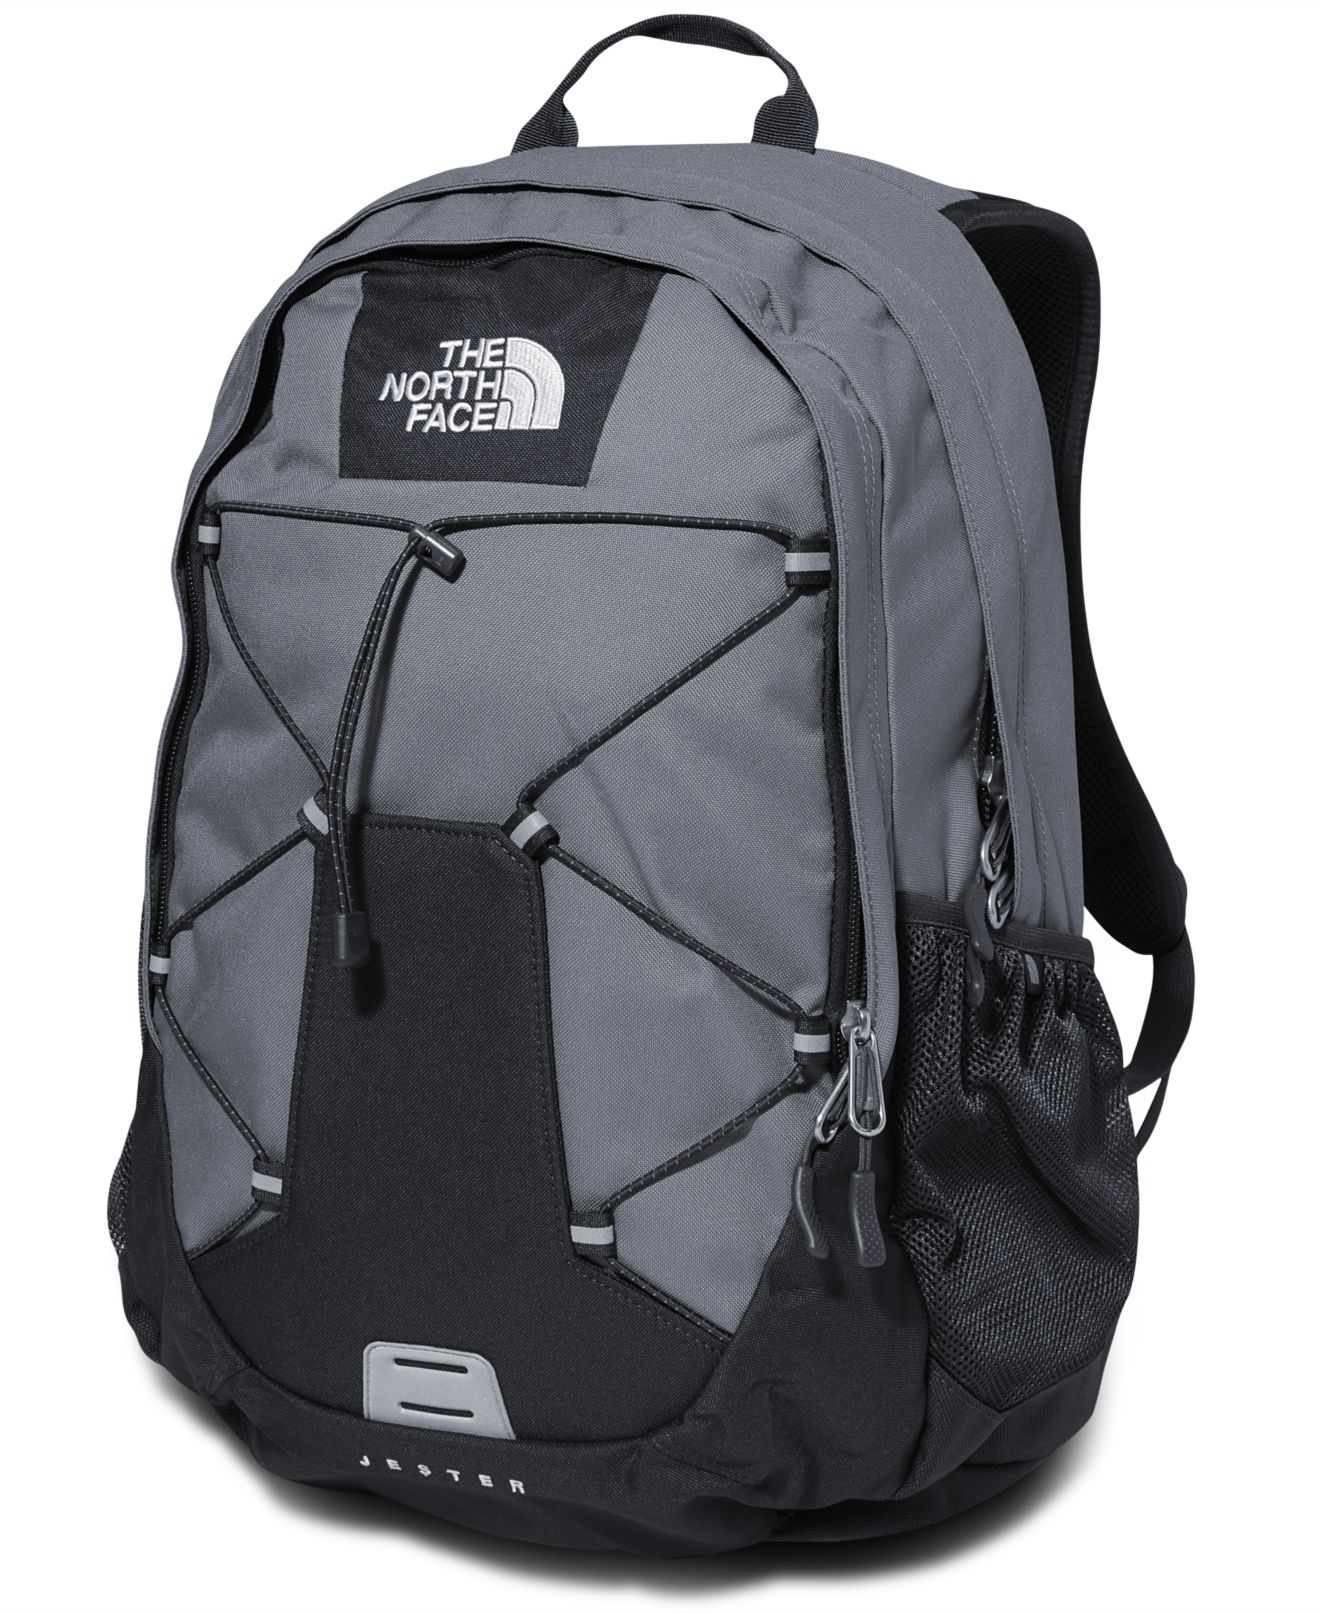 North Face Backpack Rain Cover The North Face Backpack